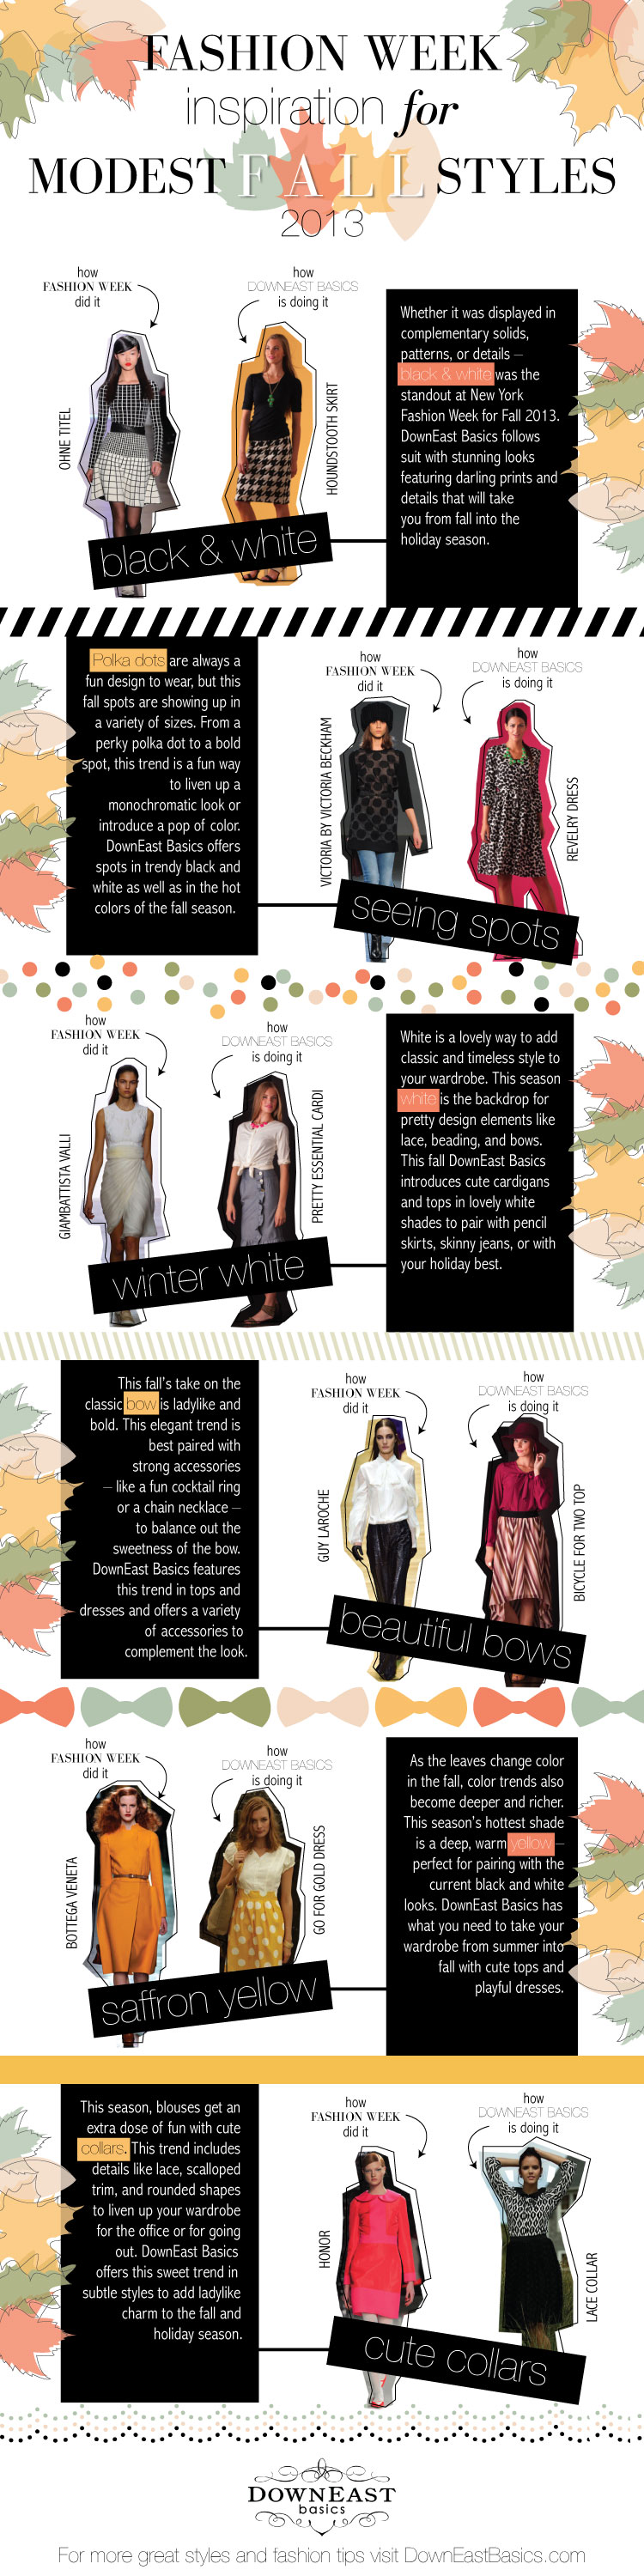 8. Modest Fall Styles From Fashion Week